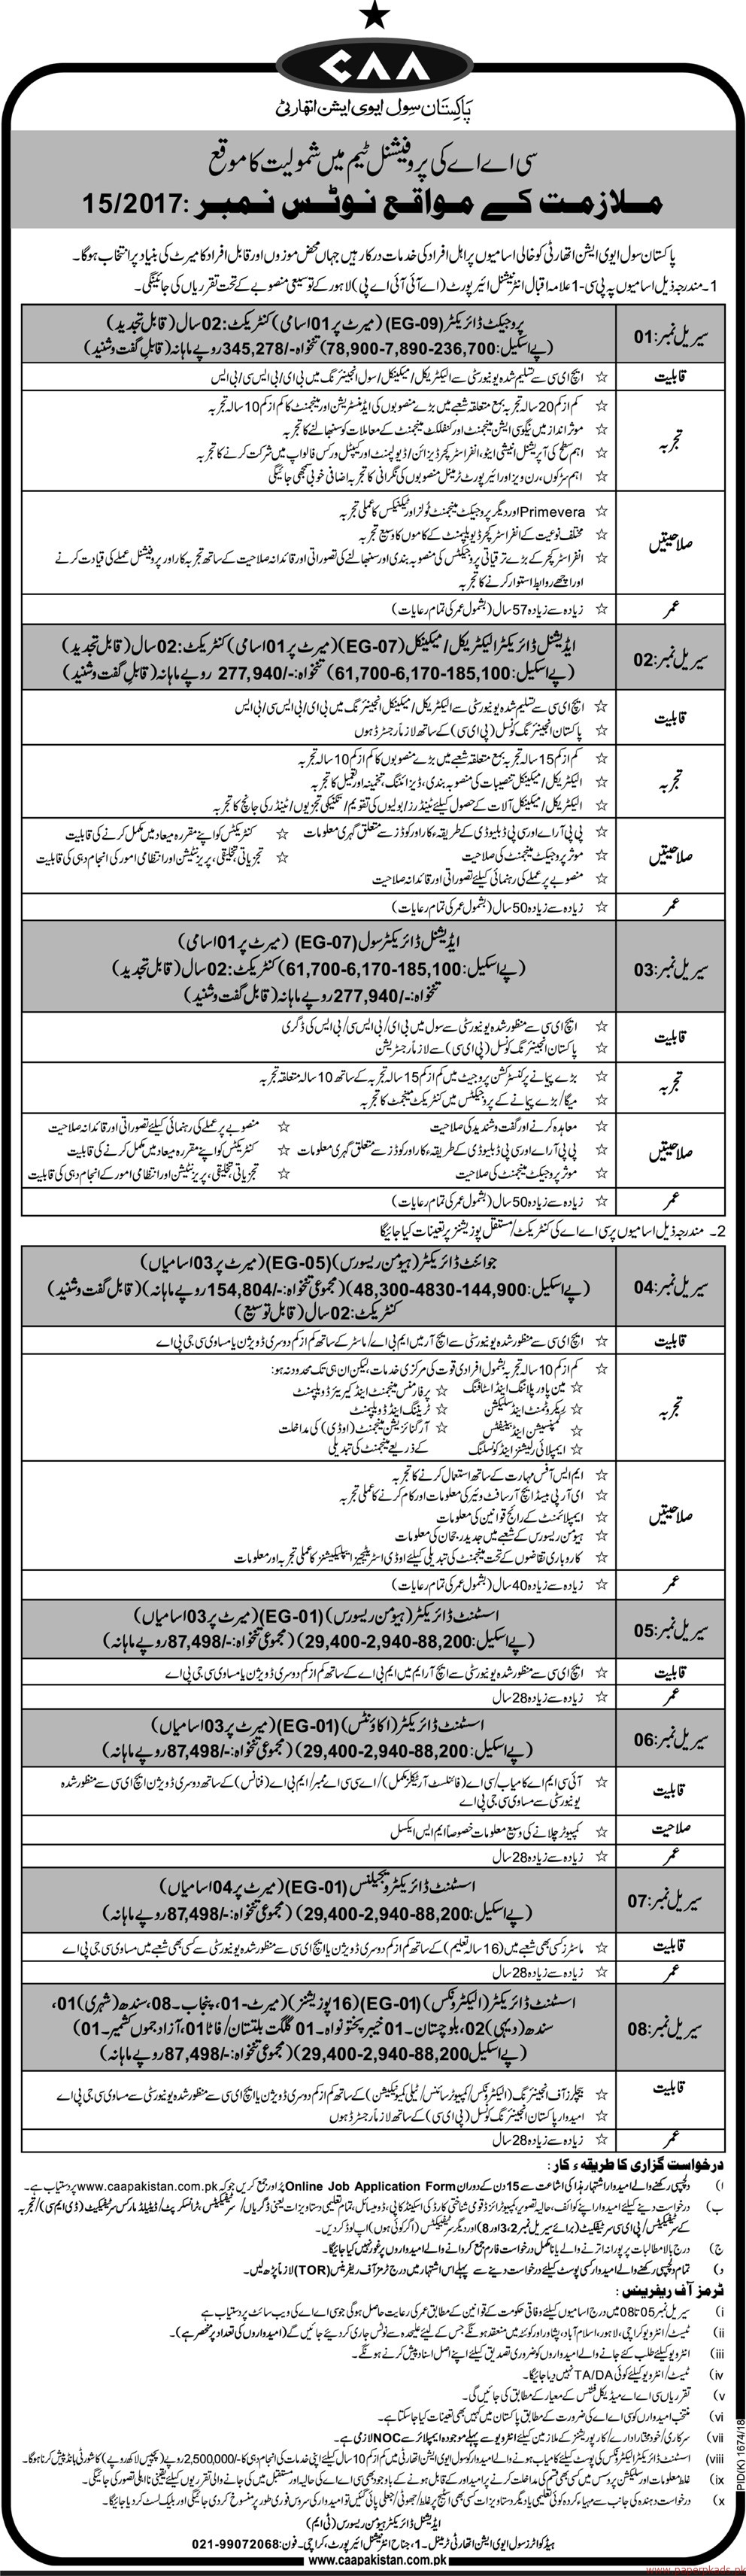 Pakistan Civil Aviation Authority Jobs 2017